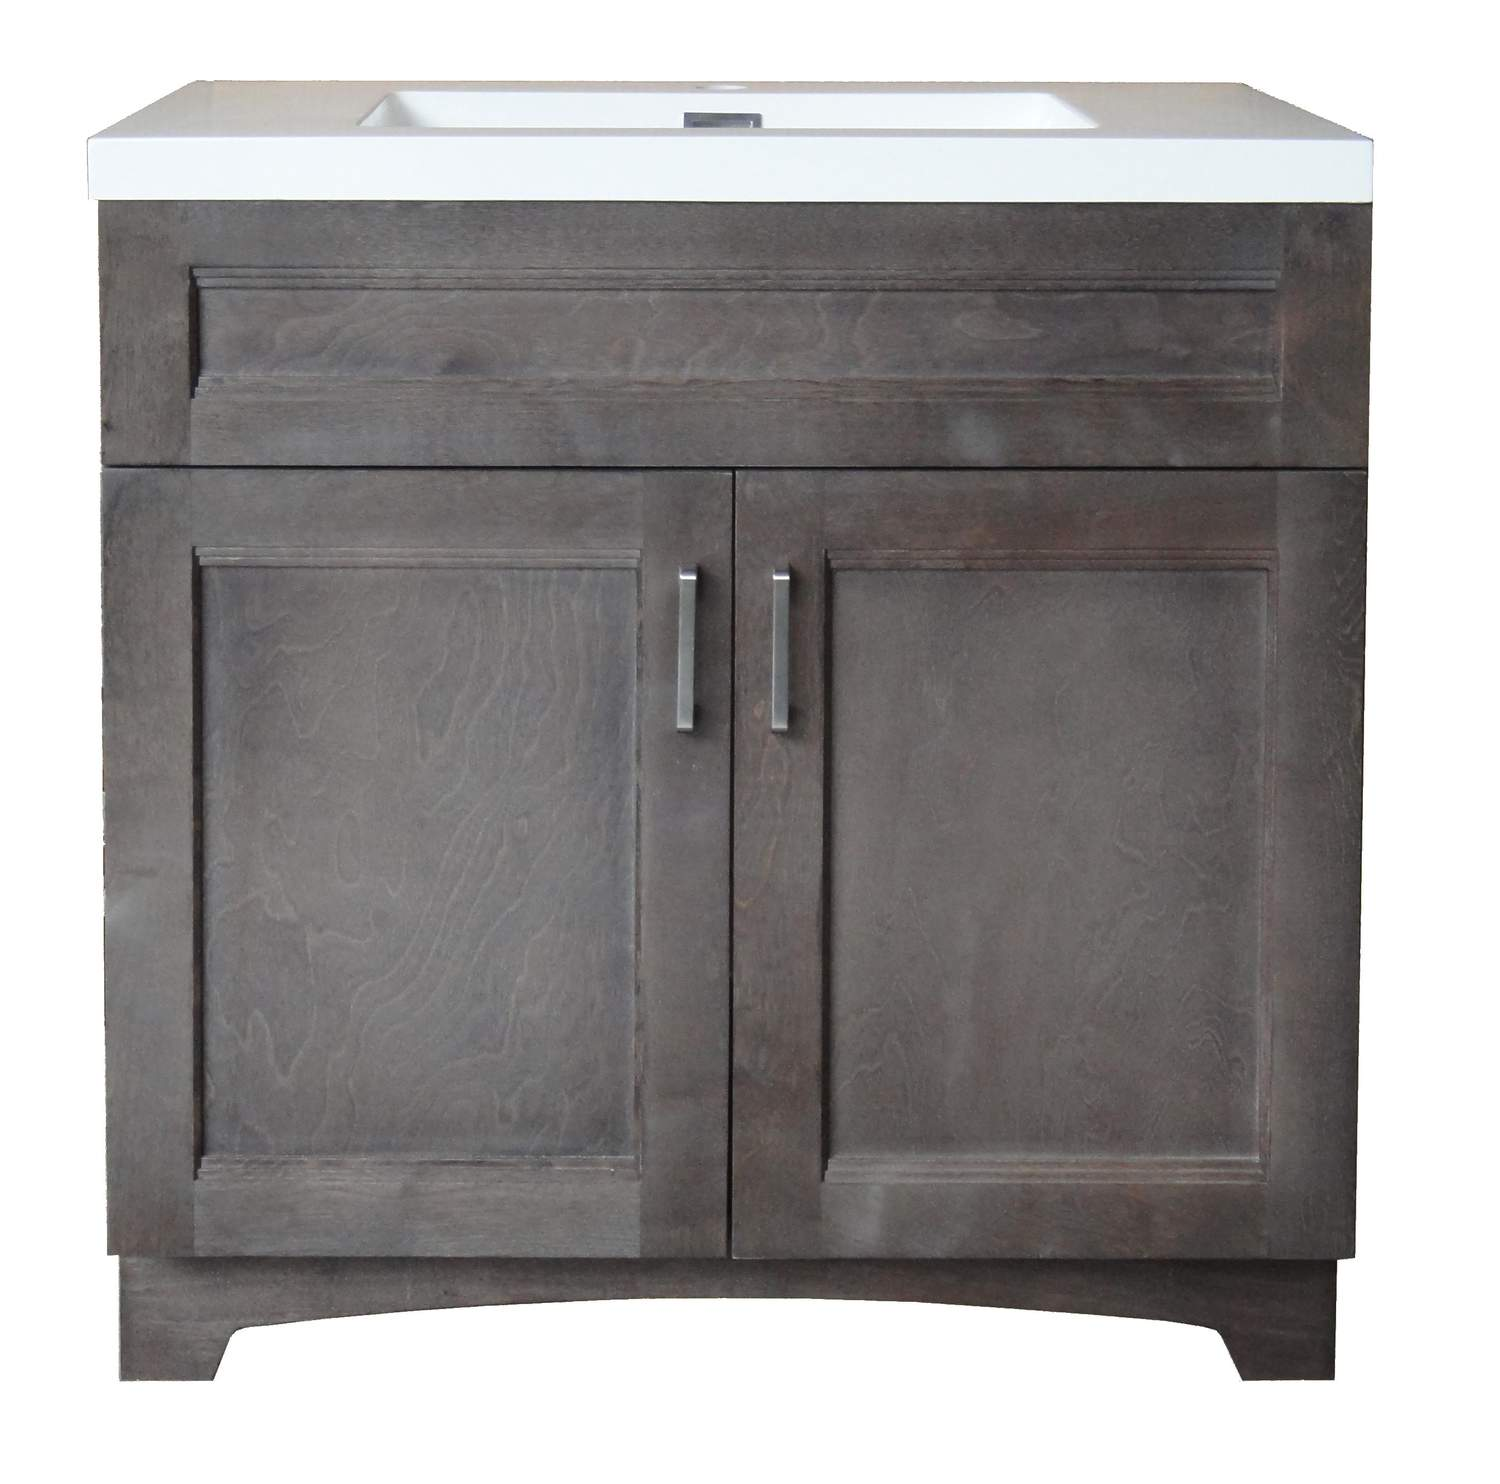 Osage Cabinet Hv3018 2c M8 30 Inch Gray Hartford Vanity And Top Combo At Sutherlands